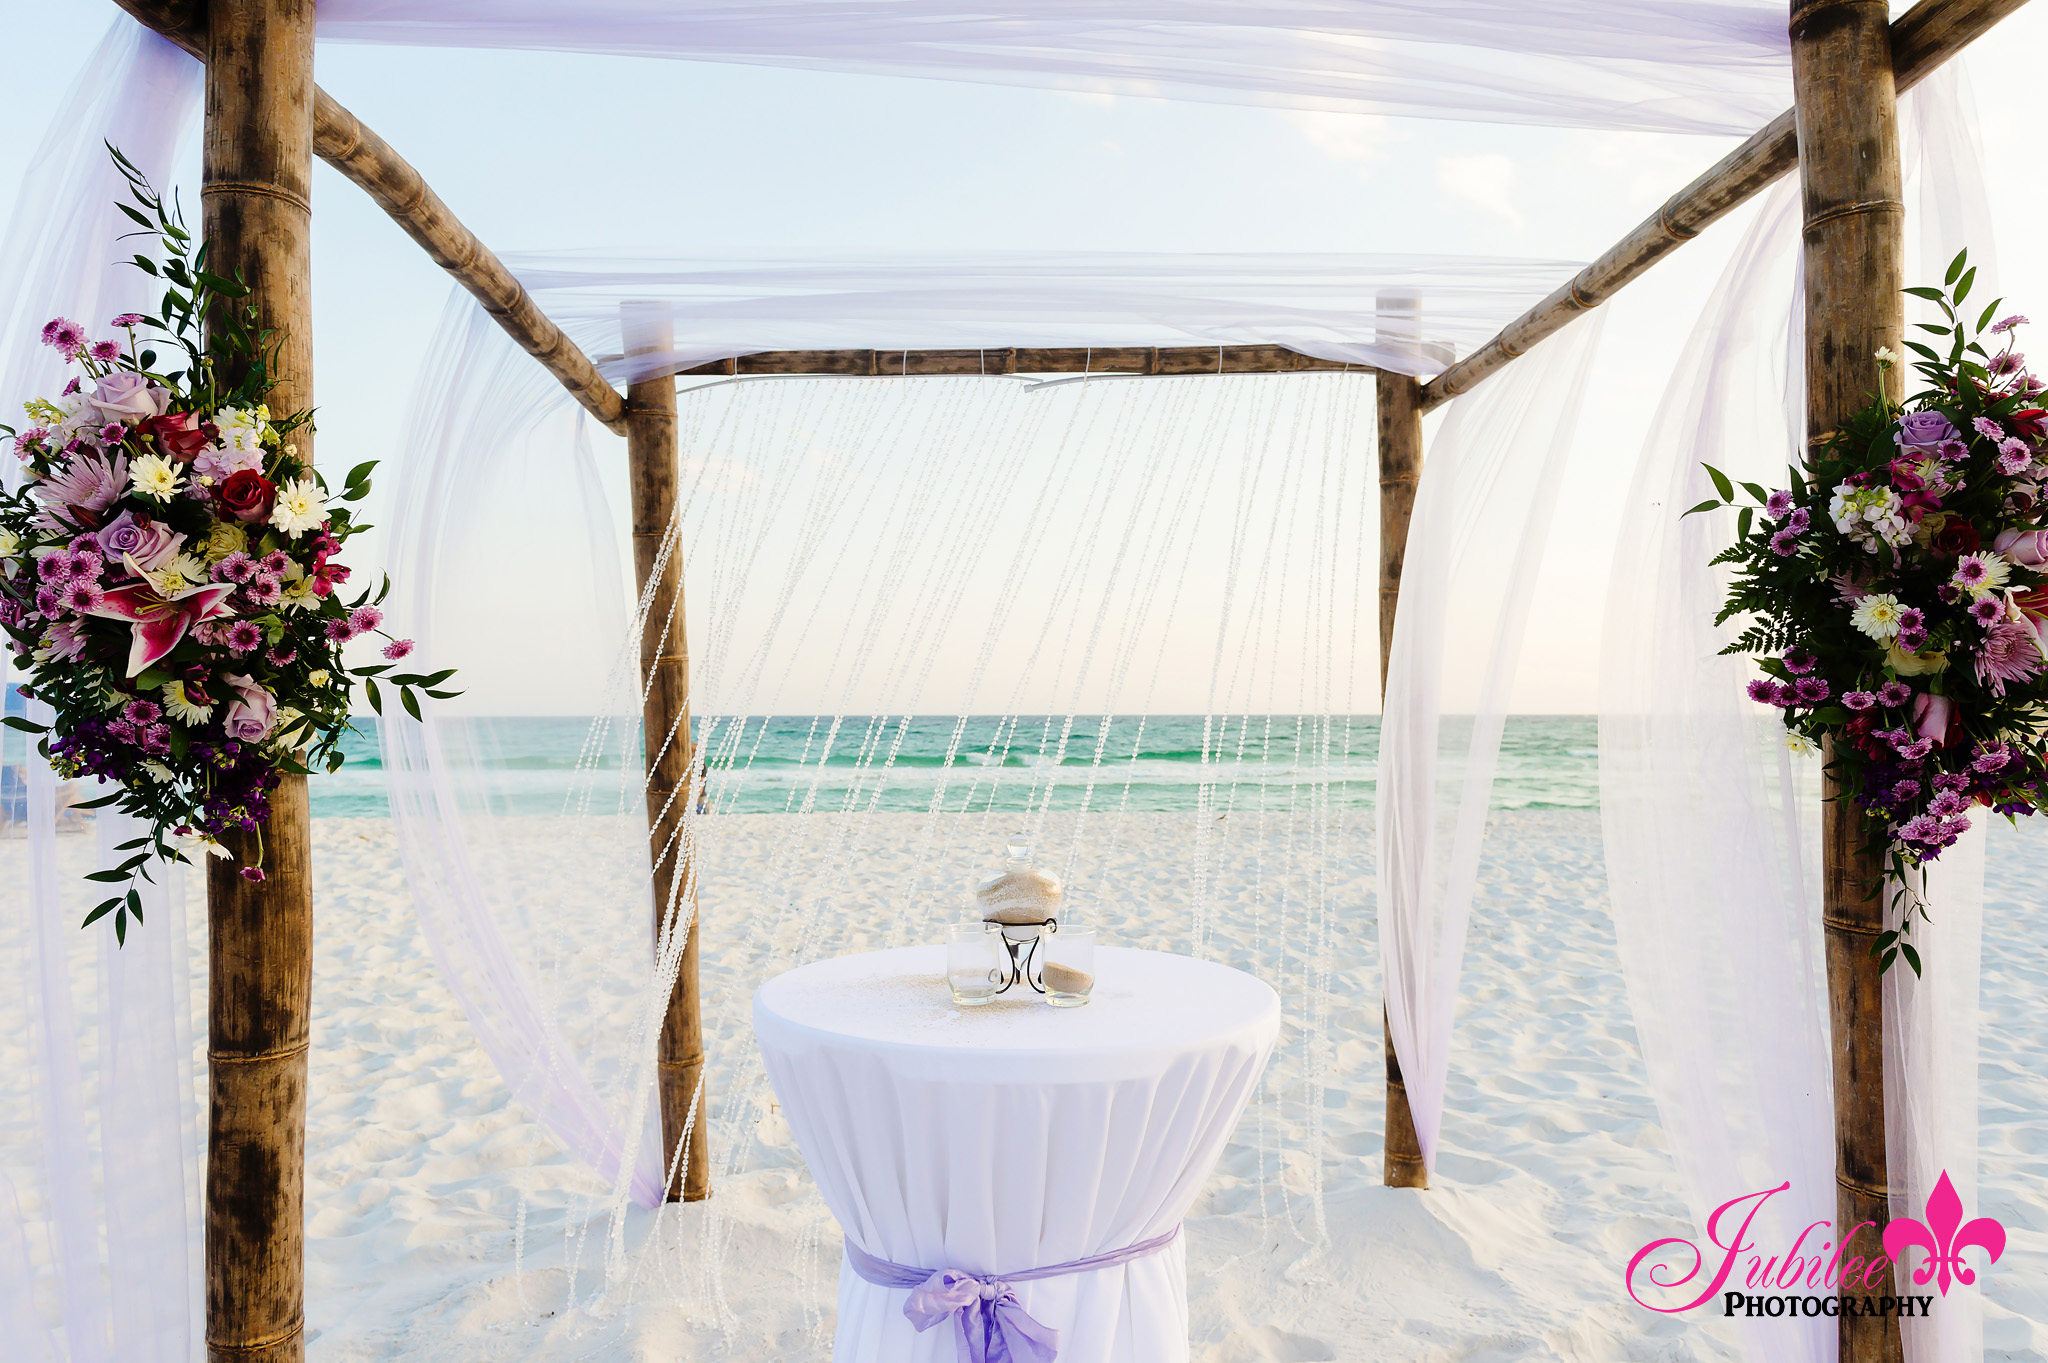 30A_Wedding_Photographer_7166